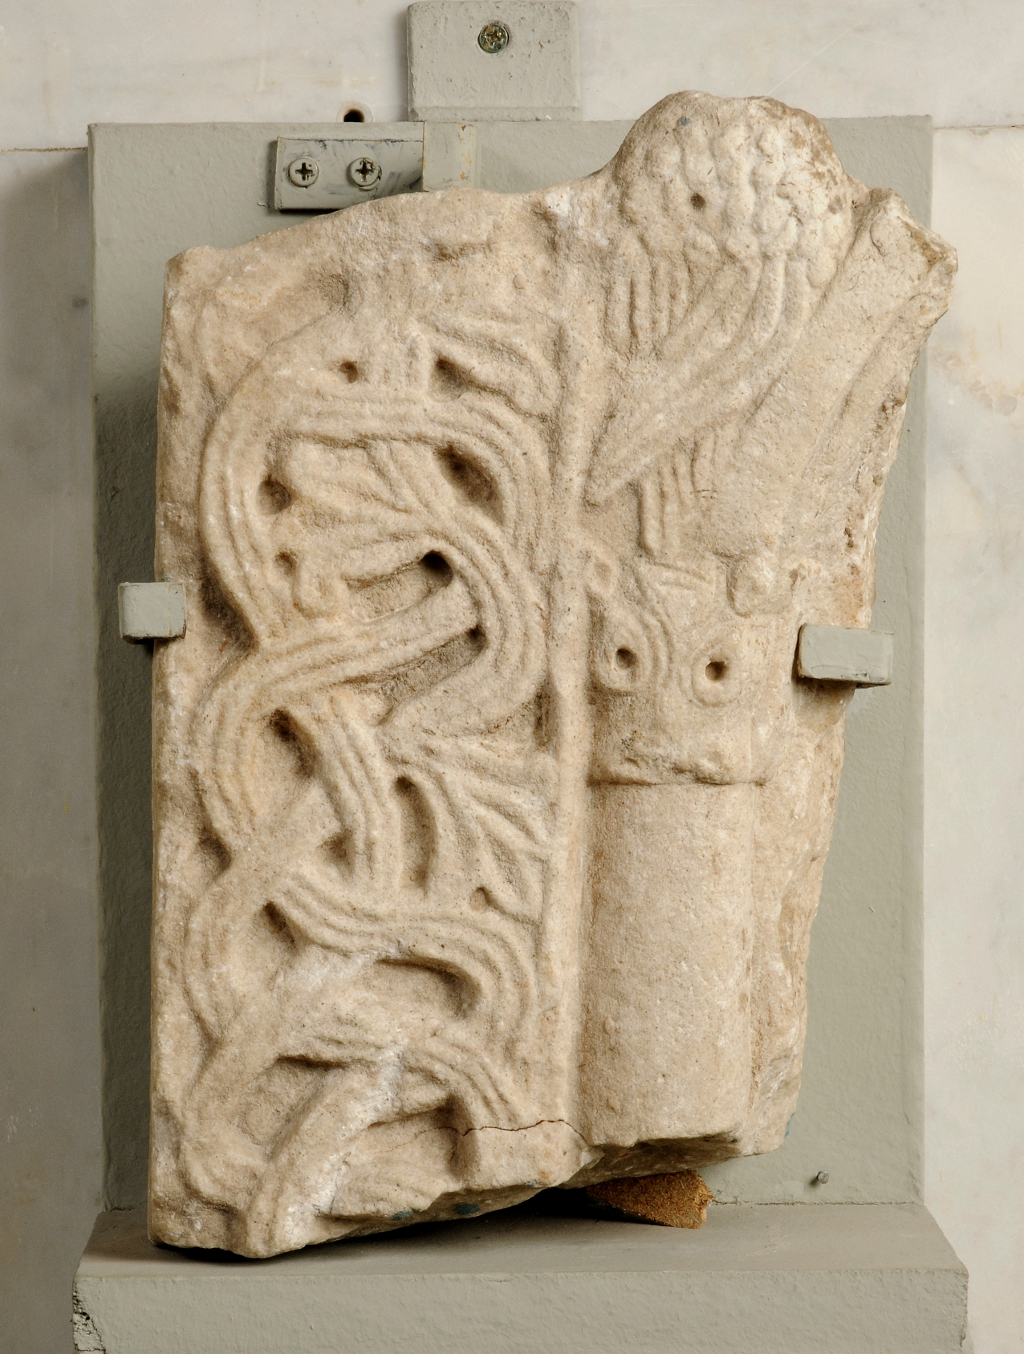 Medieval hungary stone carvings stolen from the